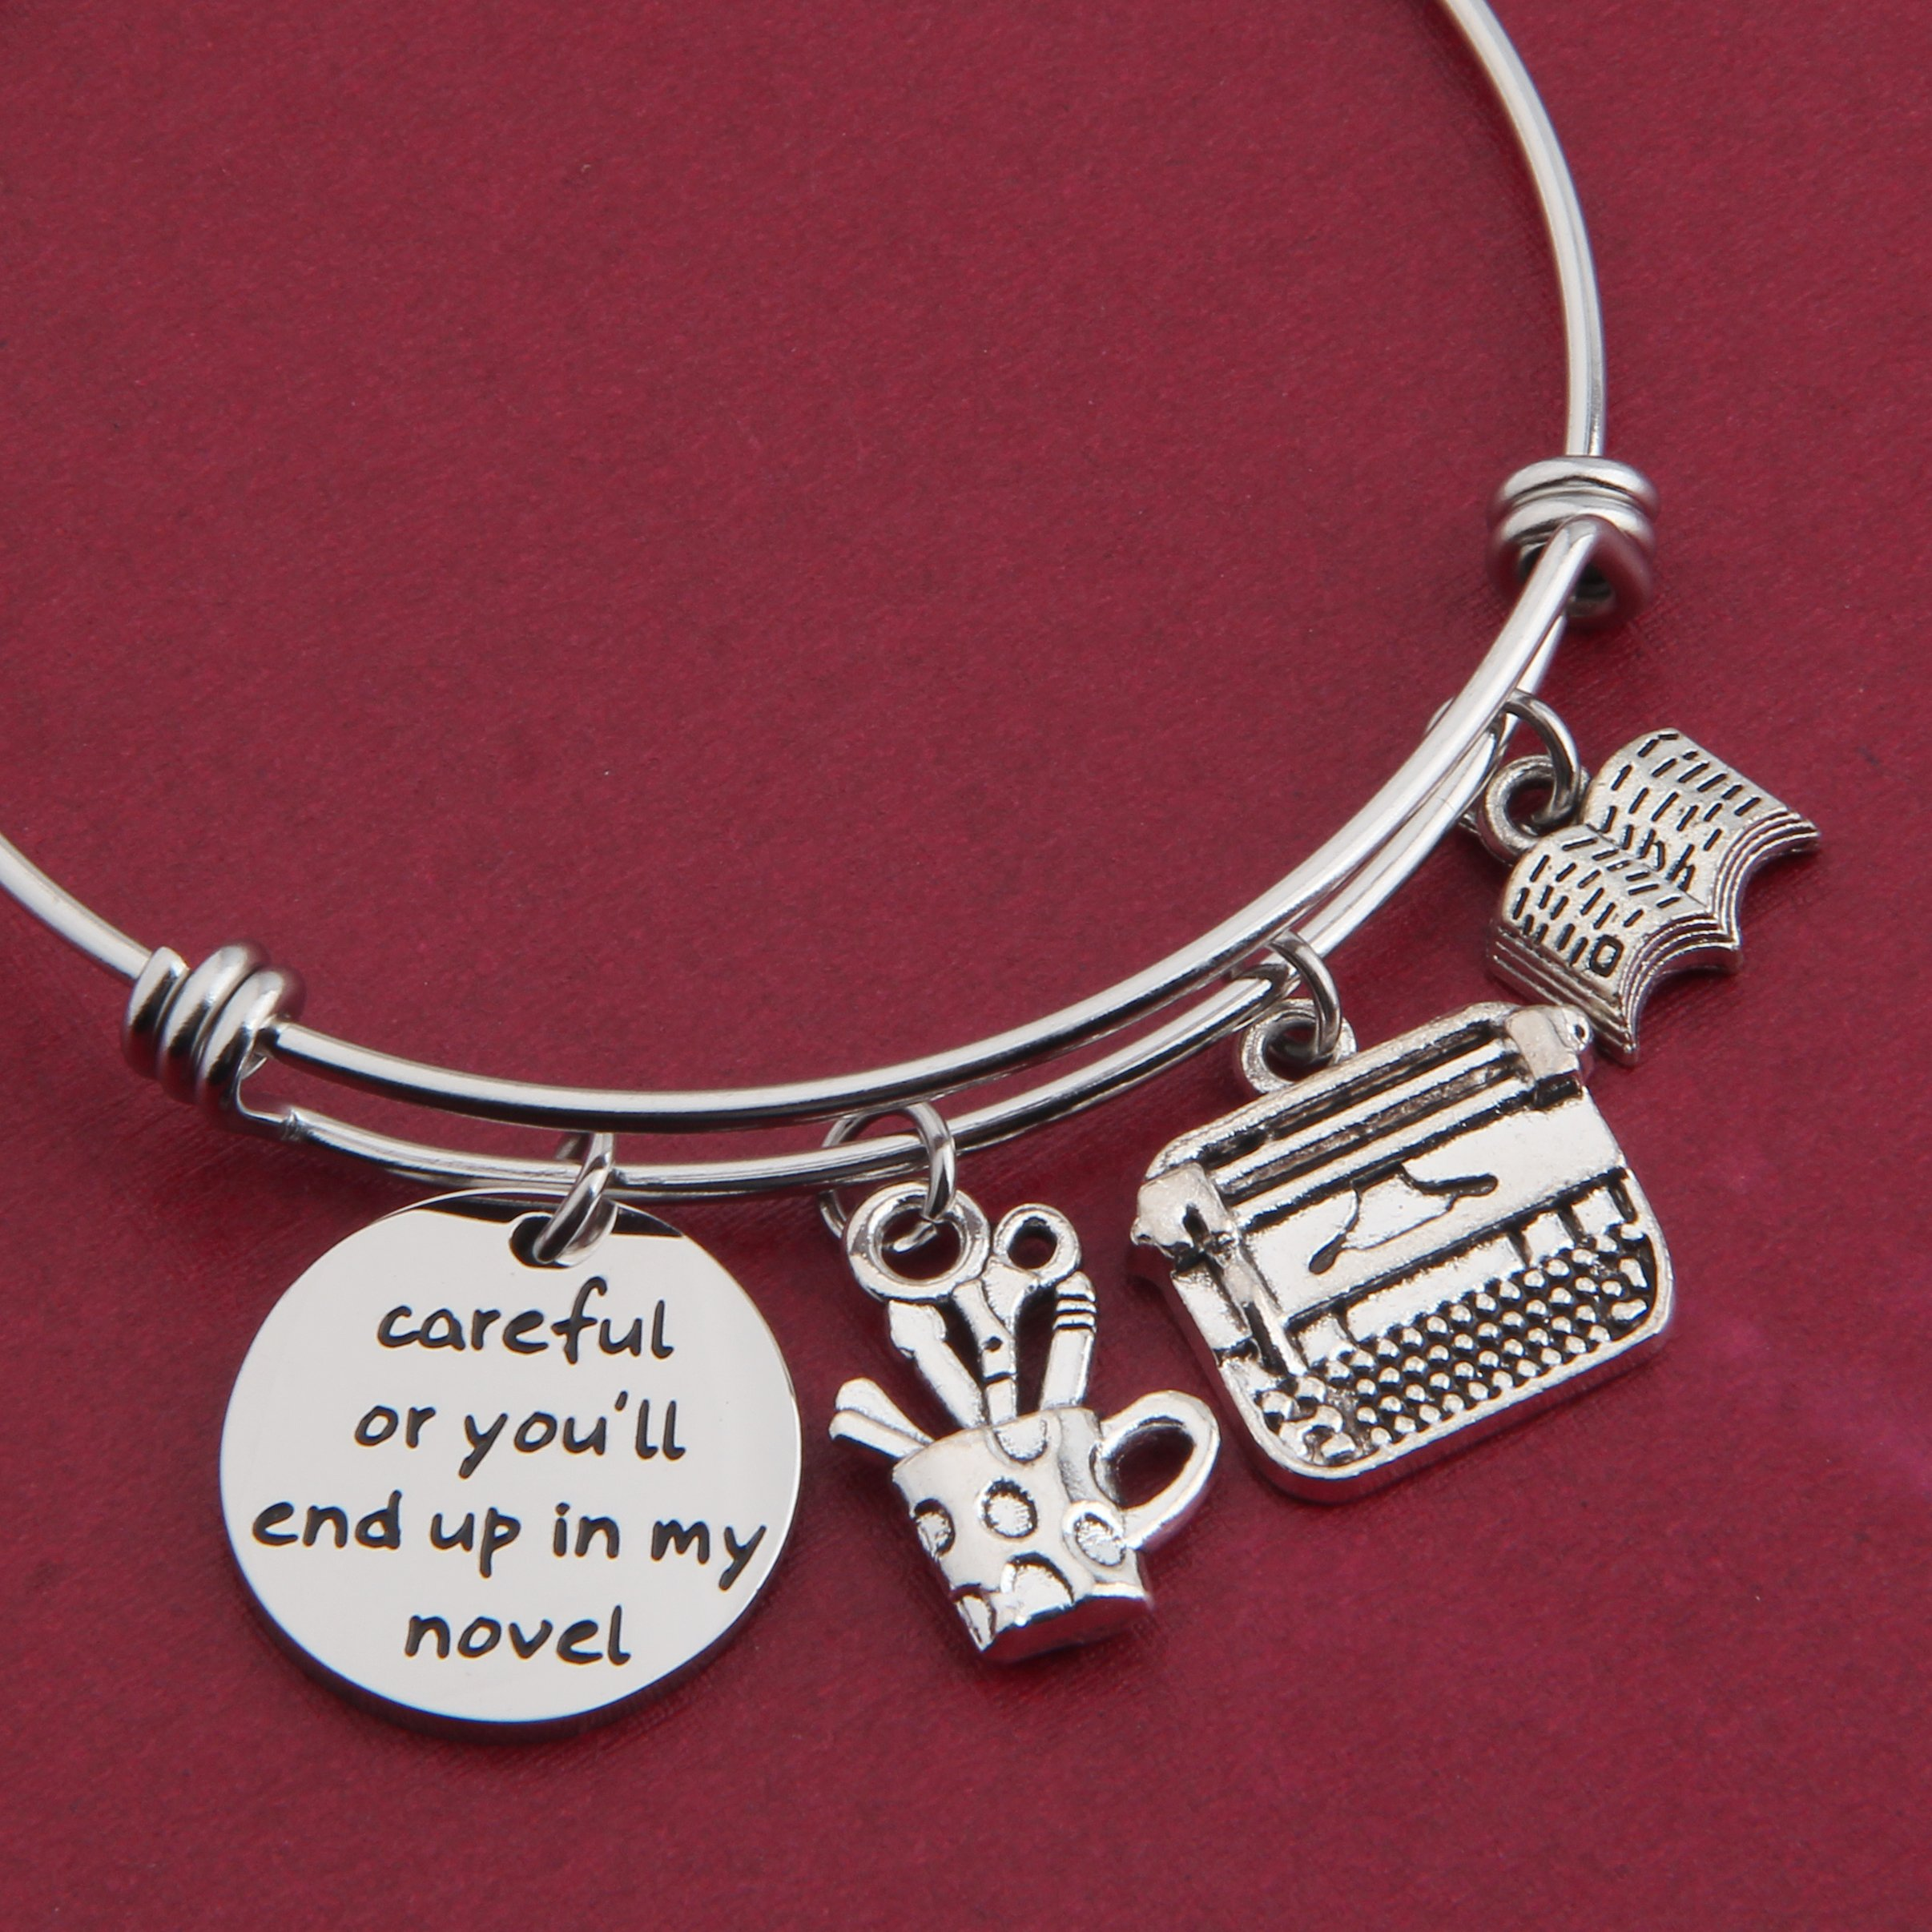 Gzrlyf Writer Bracelet Author Bracelet Writer Gift Novelist Gift Careful Or Youll End Up In My Novel Jewelry Writing Gift Author Jewelry (Writer bracelet) by Gzrlyf (Image #4)